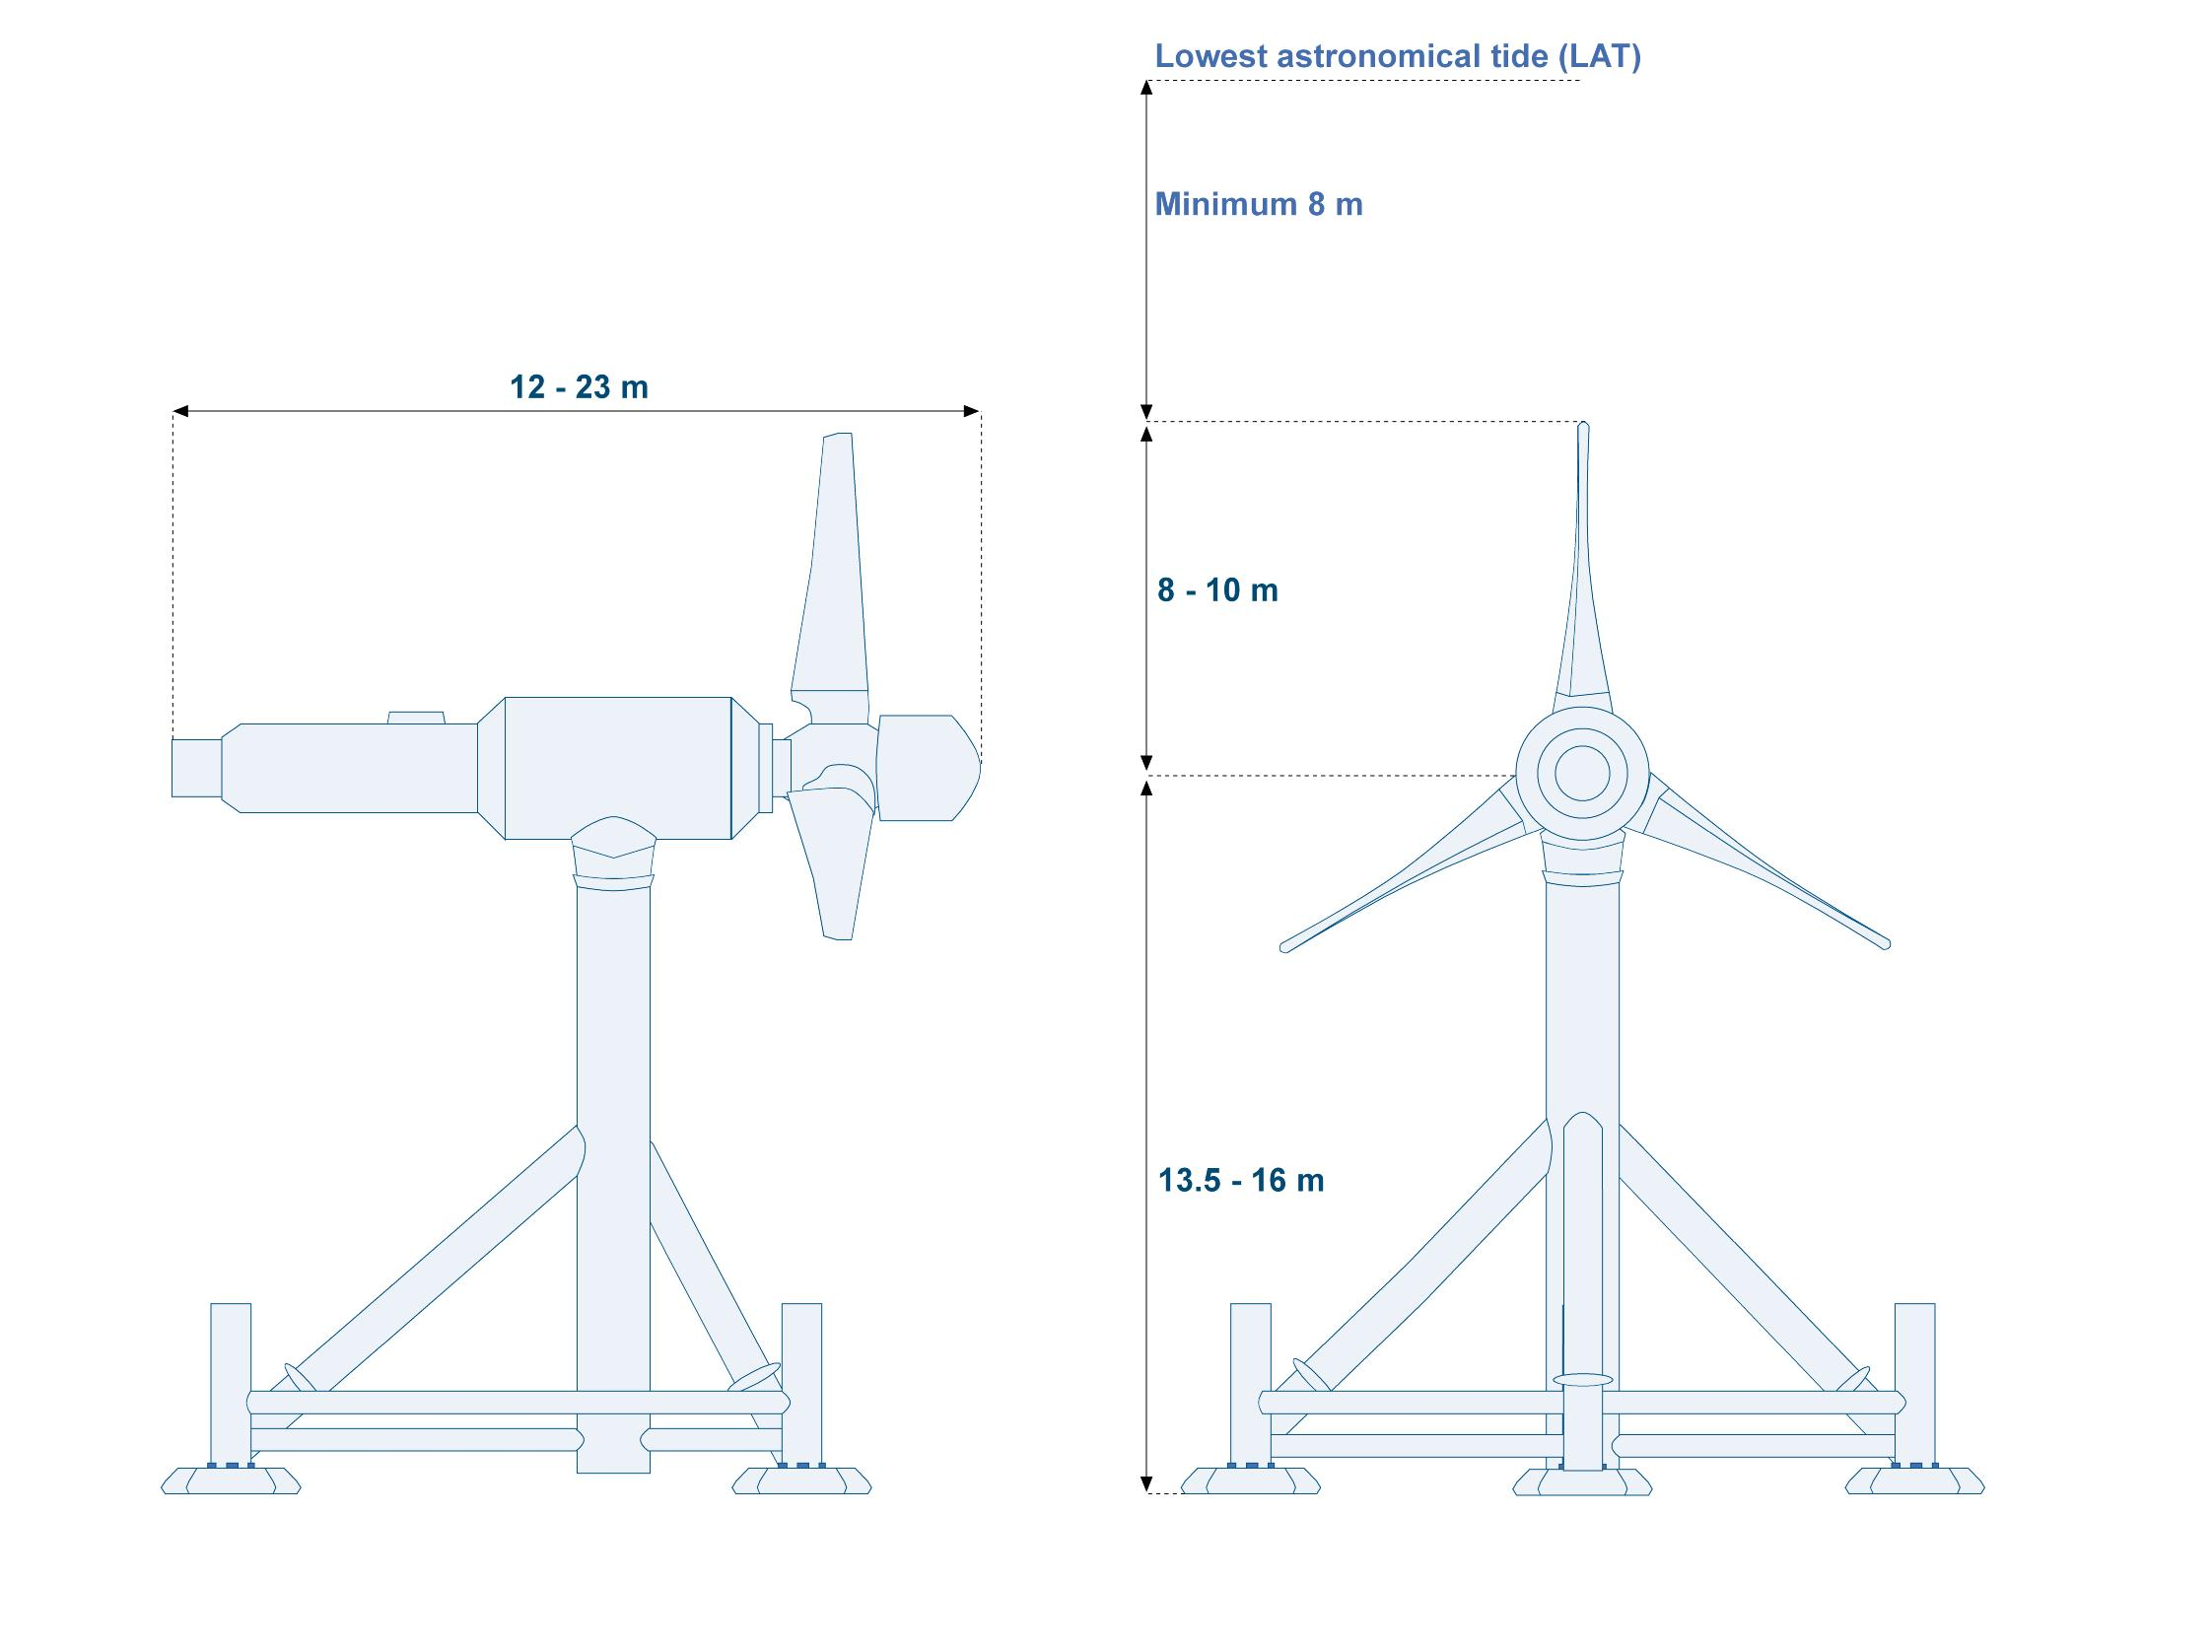 turbine_schematic